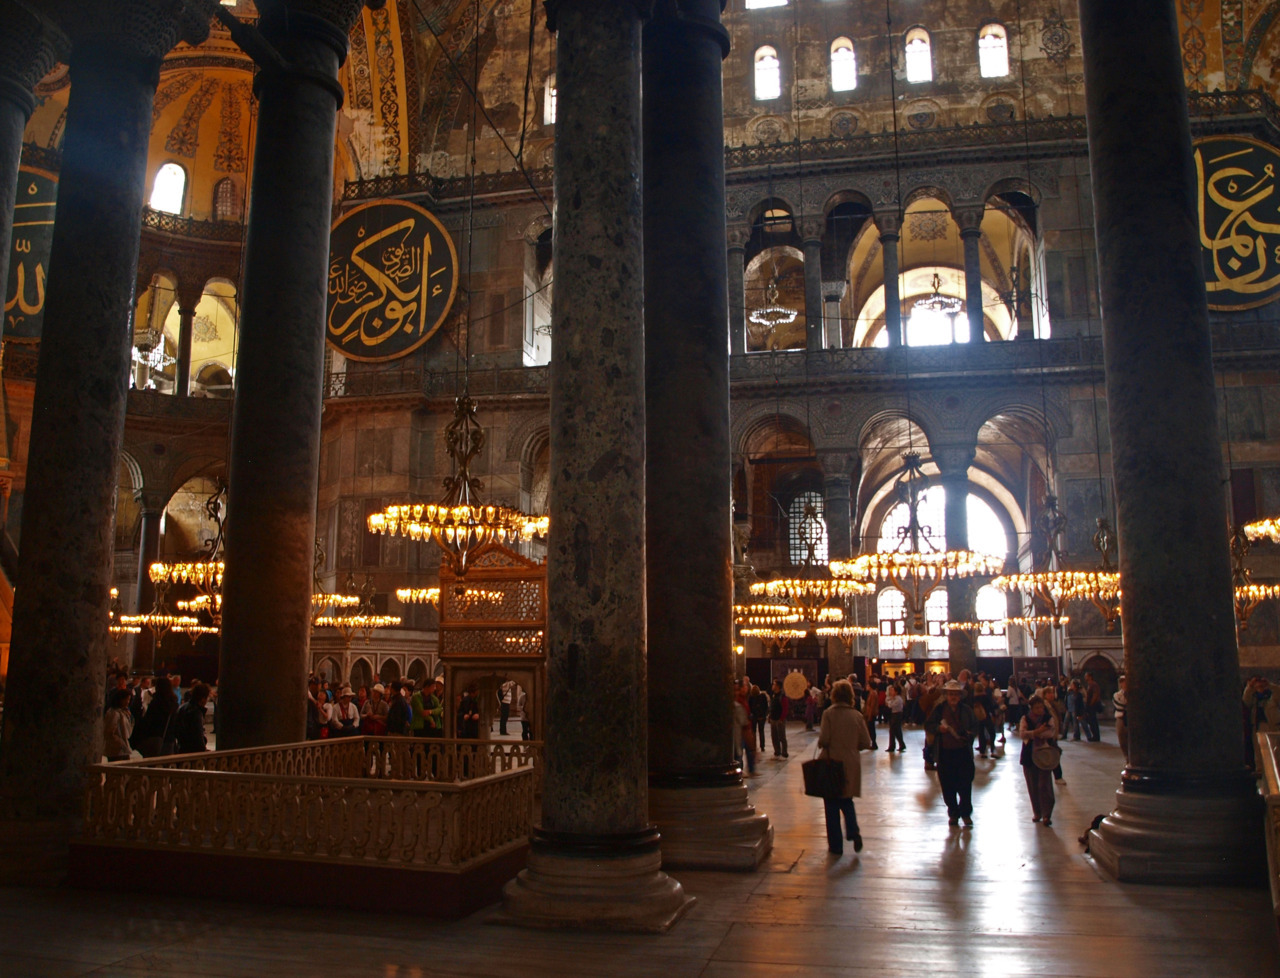 The Hagia Sophia- in Istanbul, Turkey. This church is so lovely that a Sultan built a building right next to it to try to upstage its beauty- the Blue Mosque! It's hard to say which is better, but both are worth a visit in Istanbul.